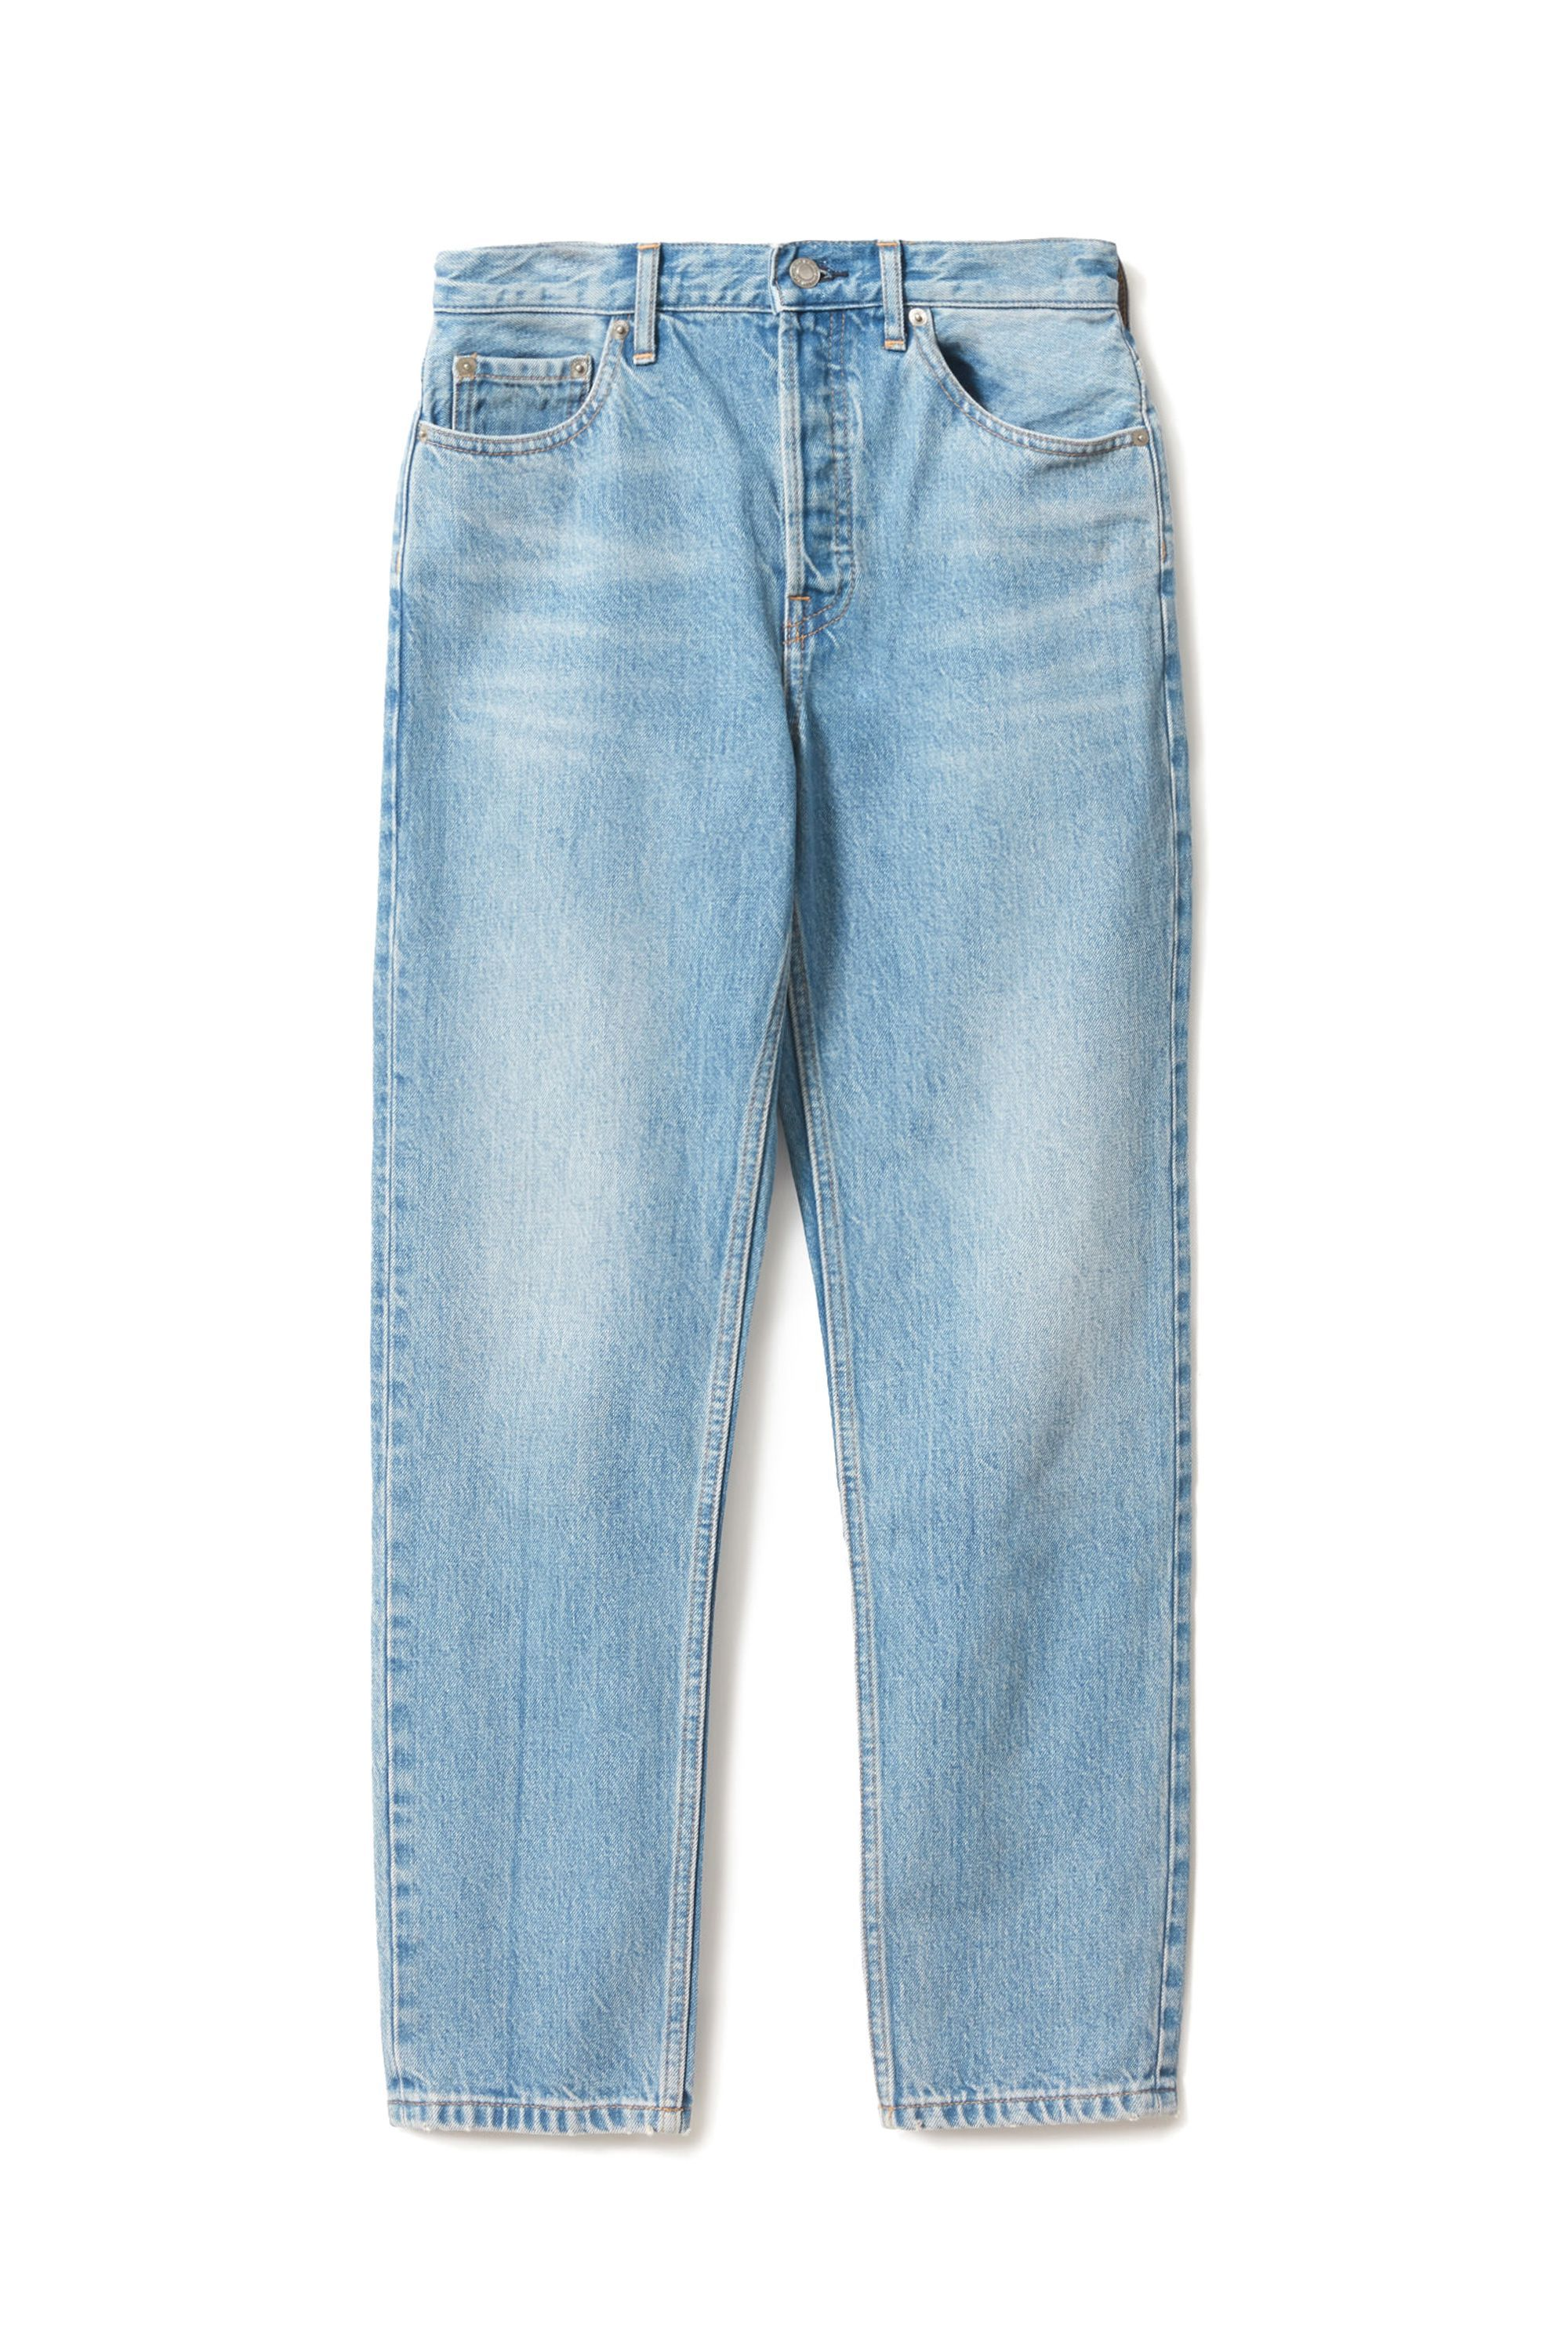 The 90's Cheeky Straight Jean Everlane everlane.com $78.00 SHOP NOW Mom jeans for moms.